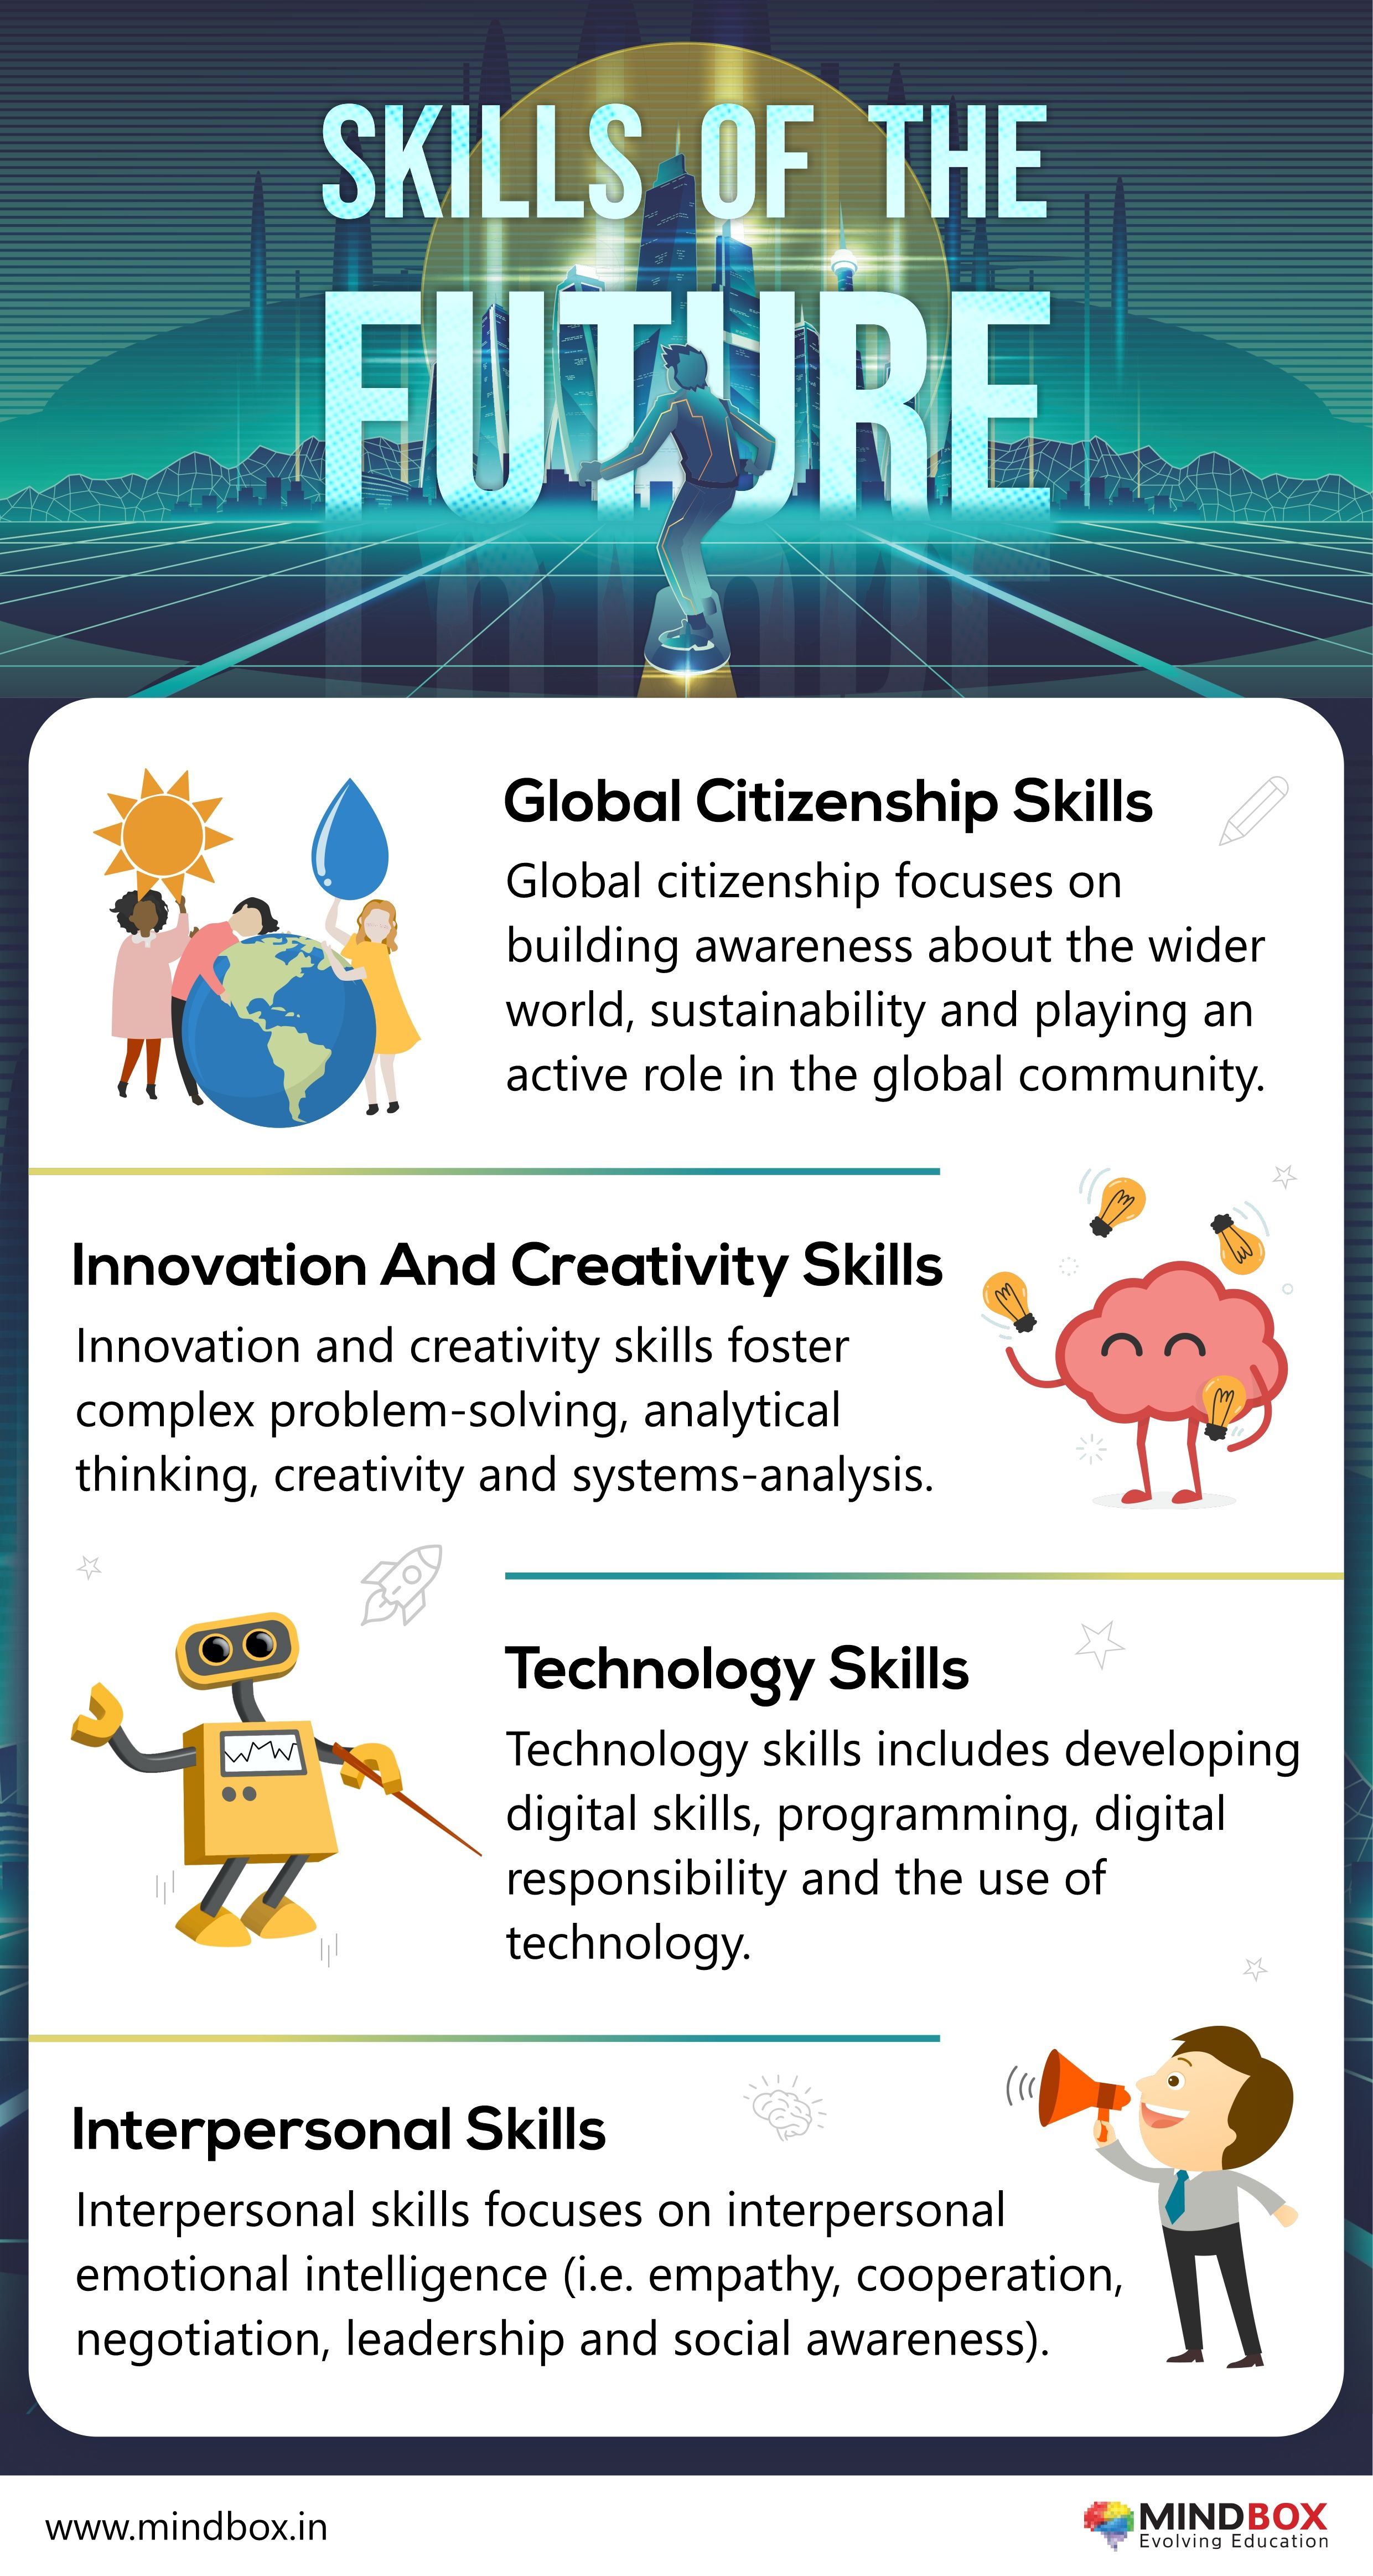 Skills Of The Future Technology Skills 21st Century Learning Interpersonal Skills